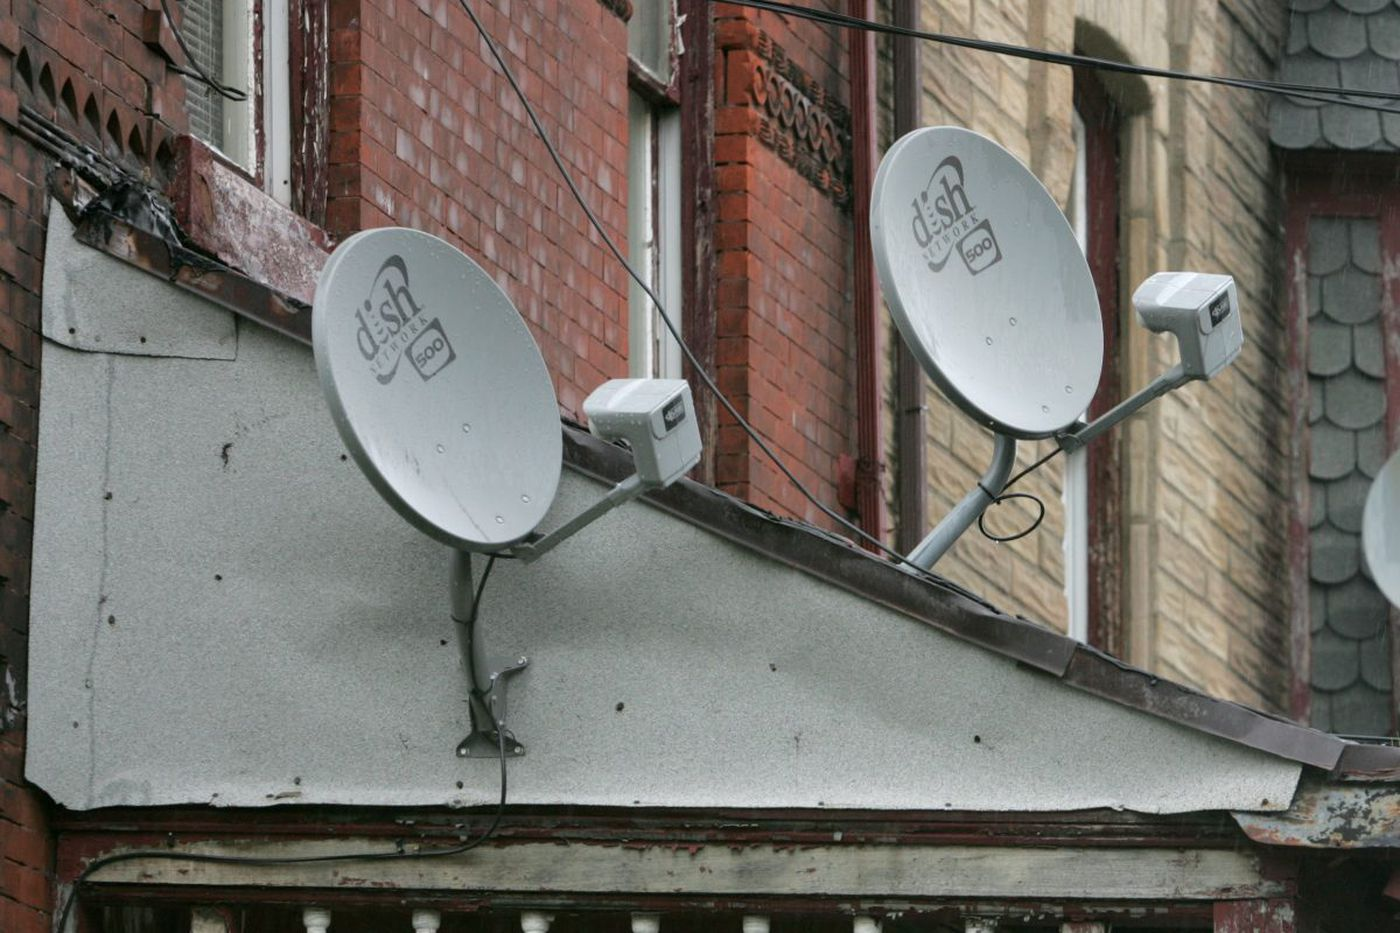 why do people in poverty have satellite dishes